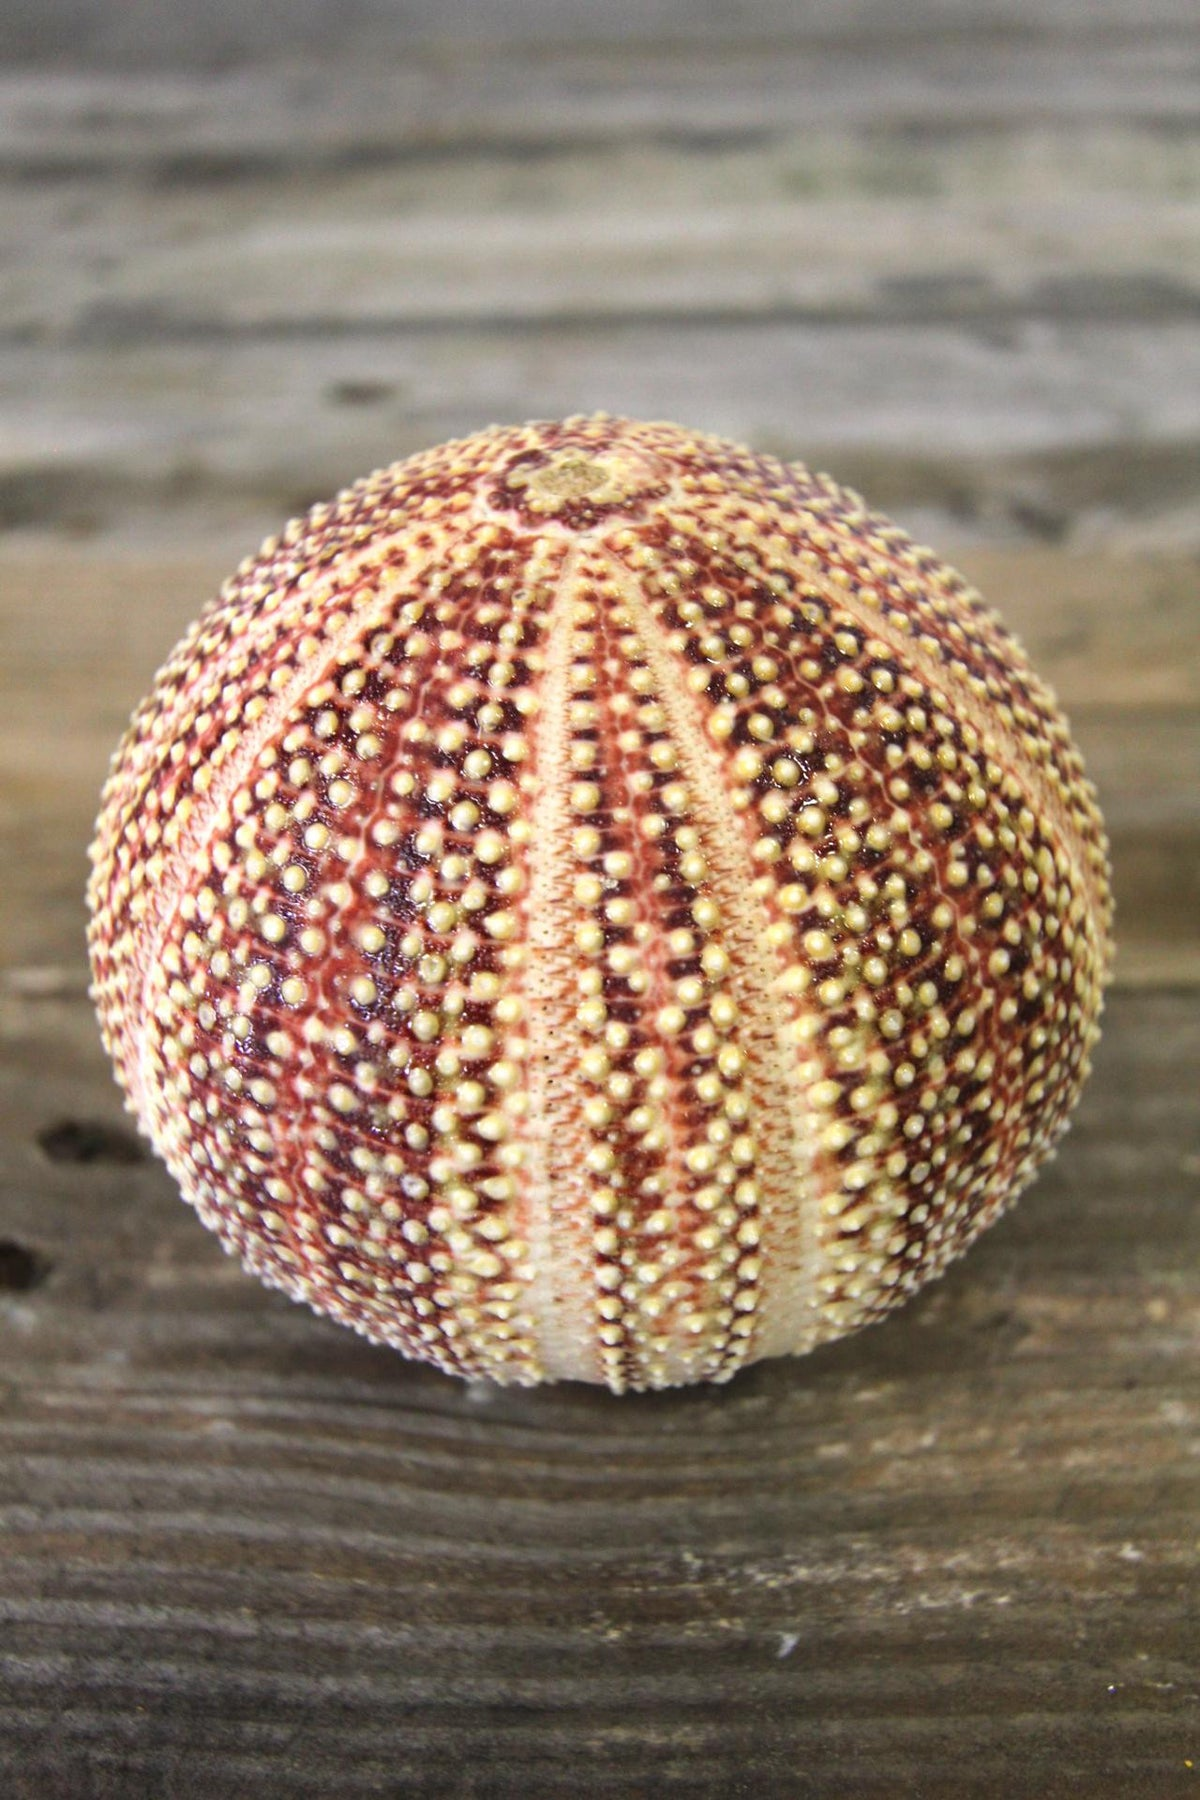 English Channel Sea Urchin